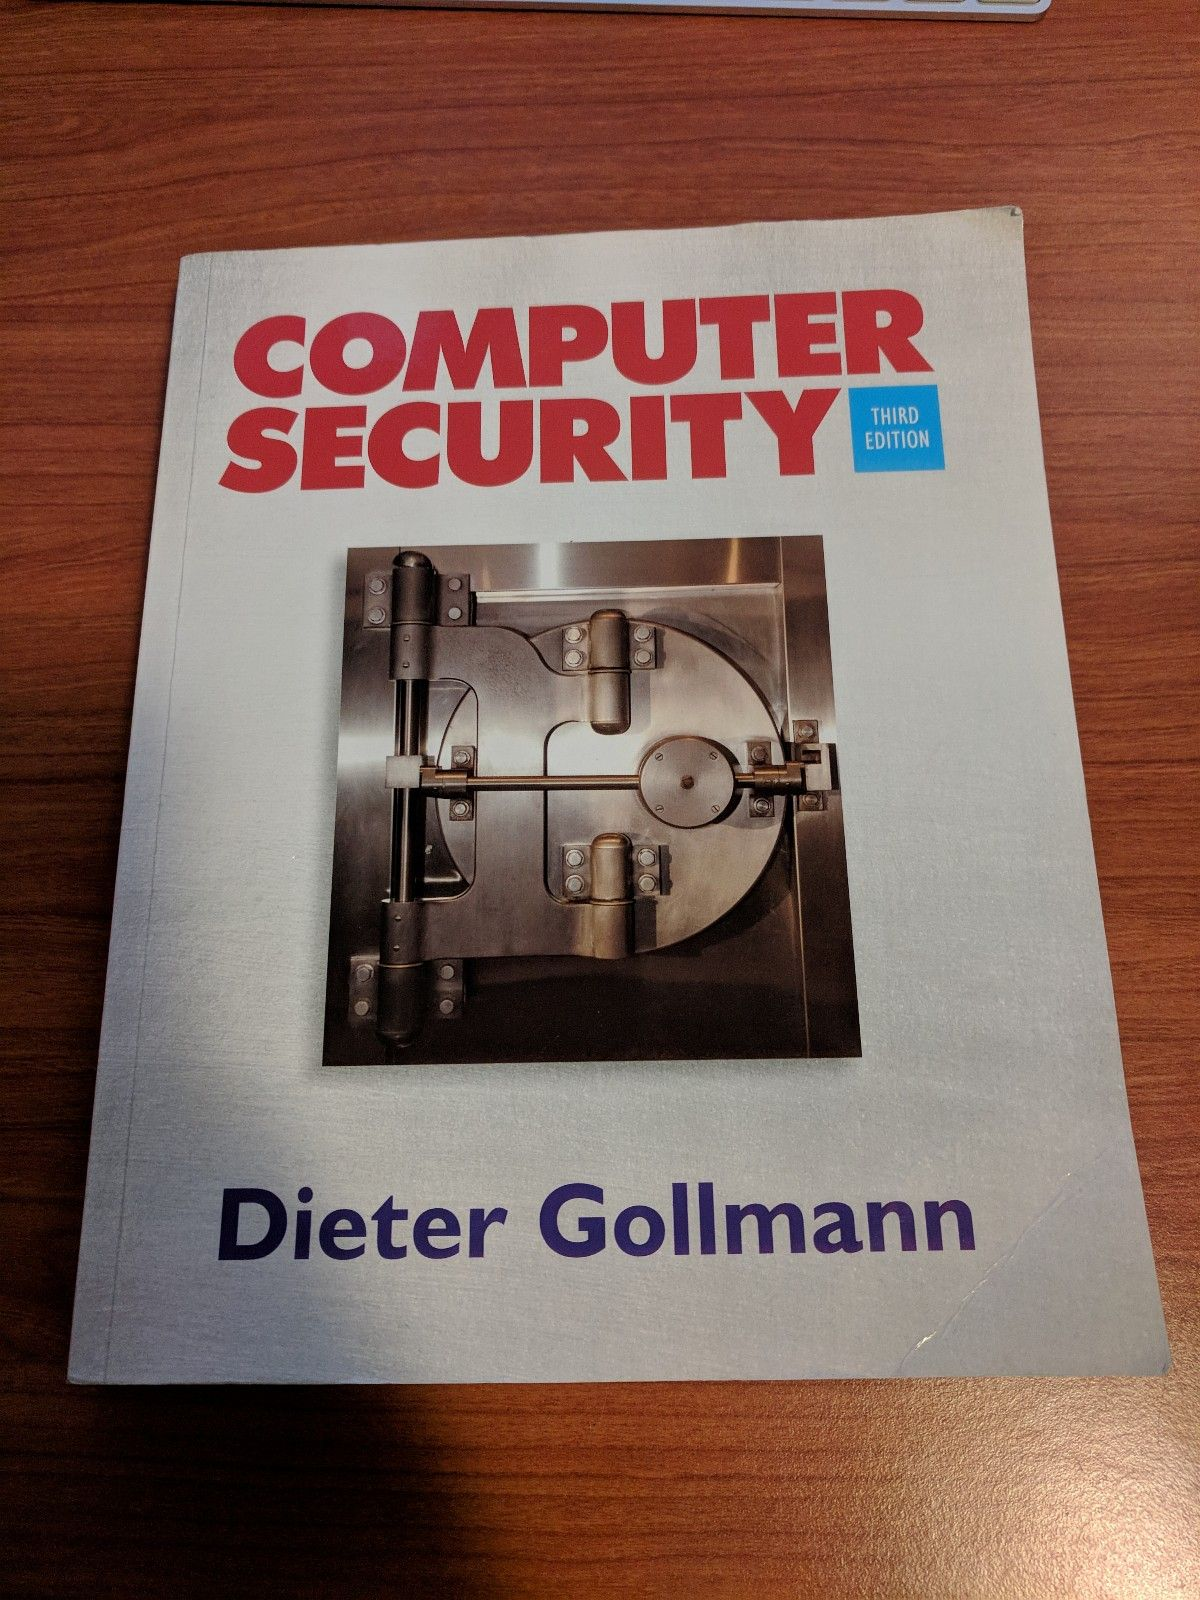 Computer Security - Dieter Gollman (3rd edition) - Oslo  - The curriculum book for the UNIK4270 course at University of Oslo. 